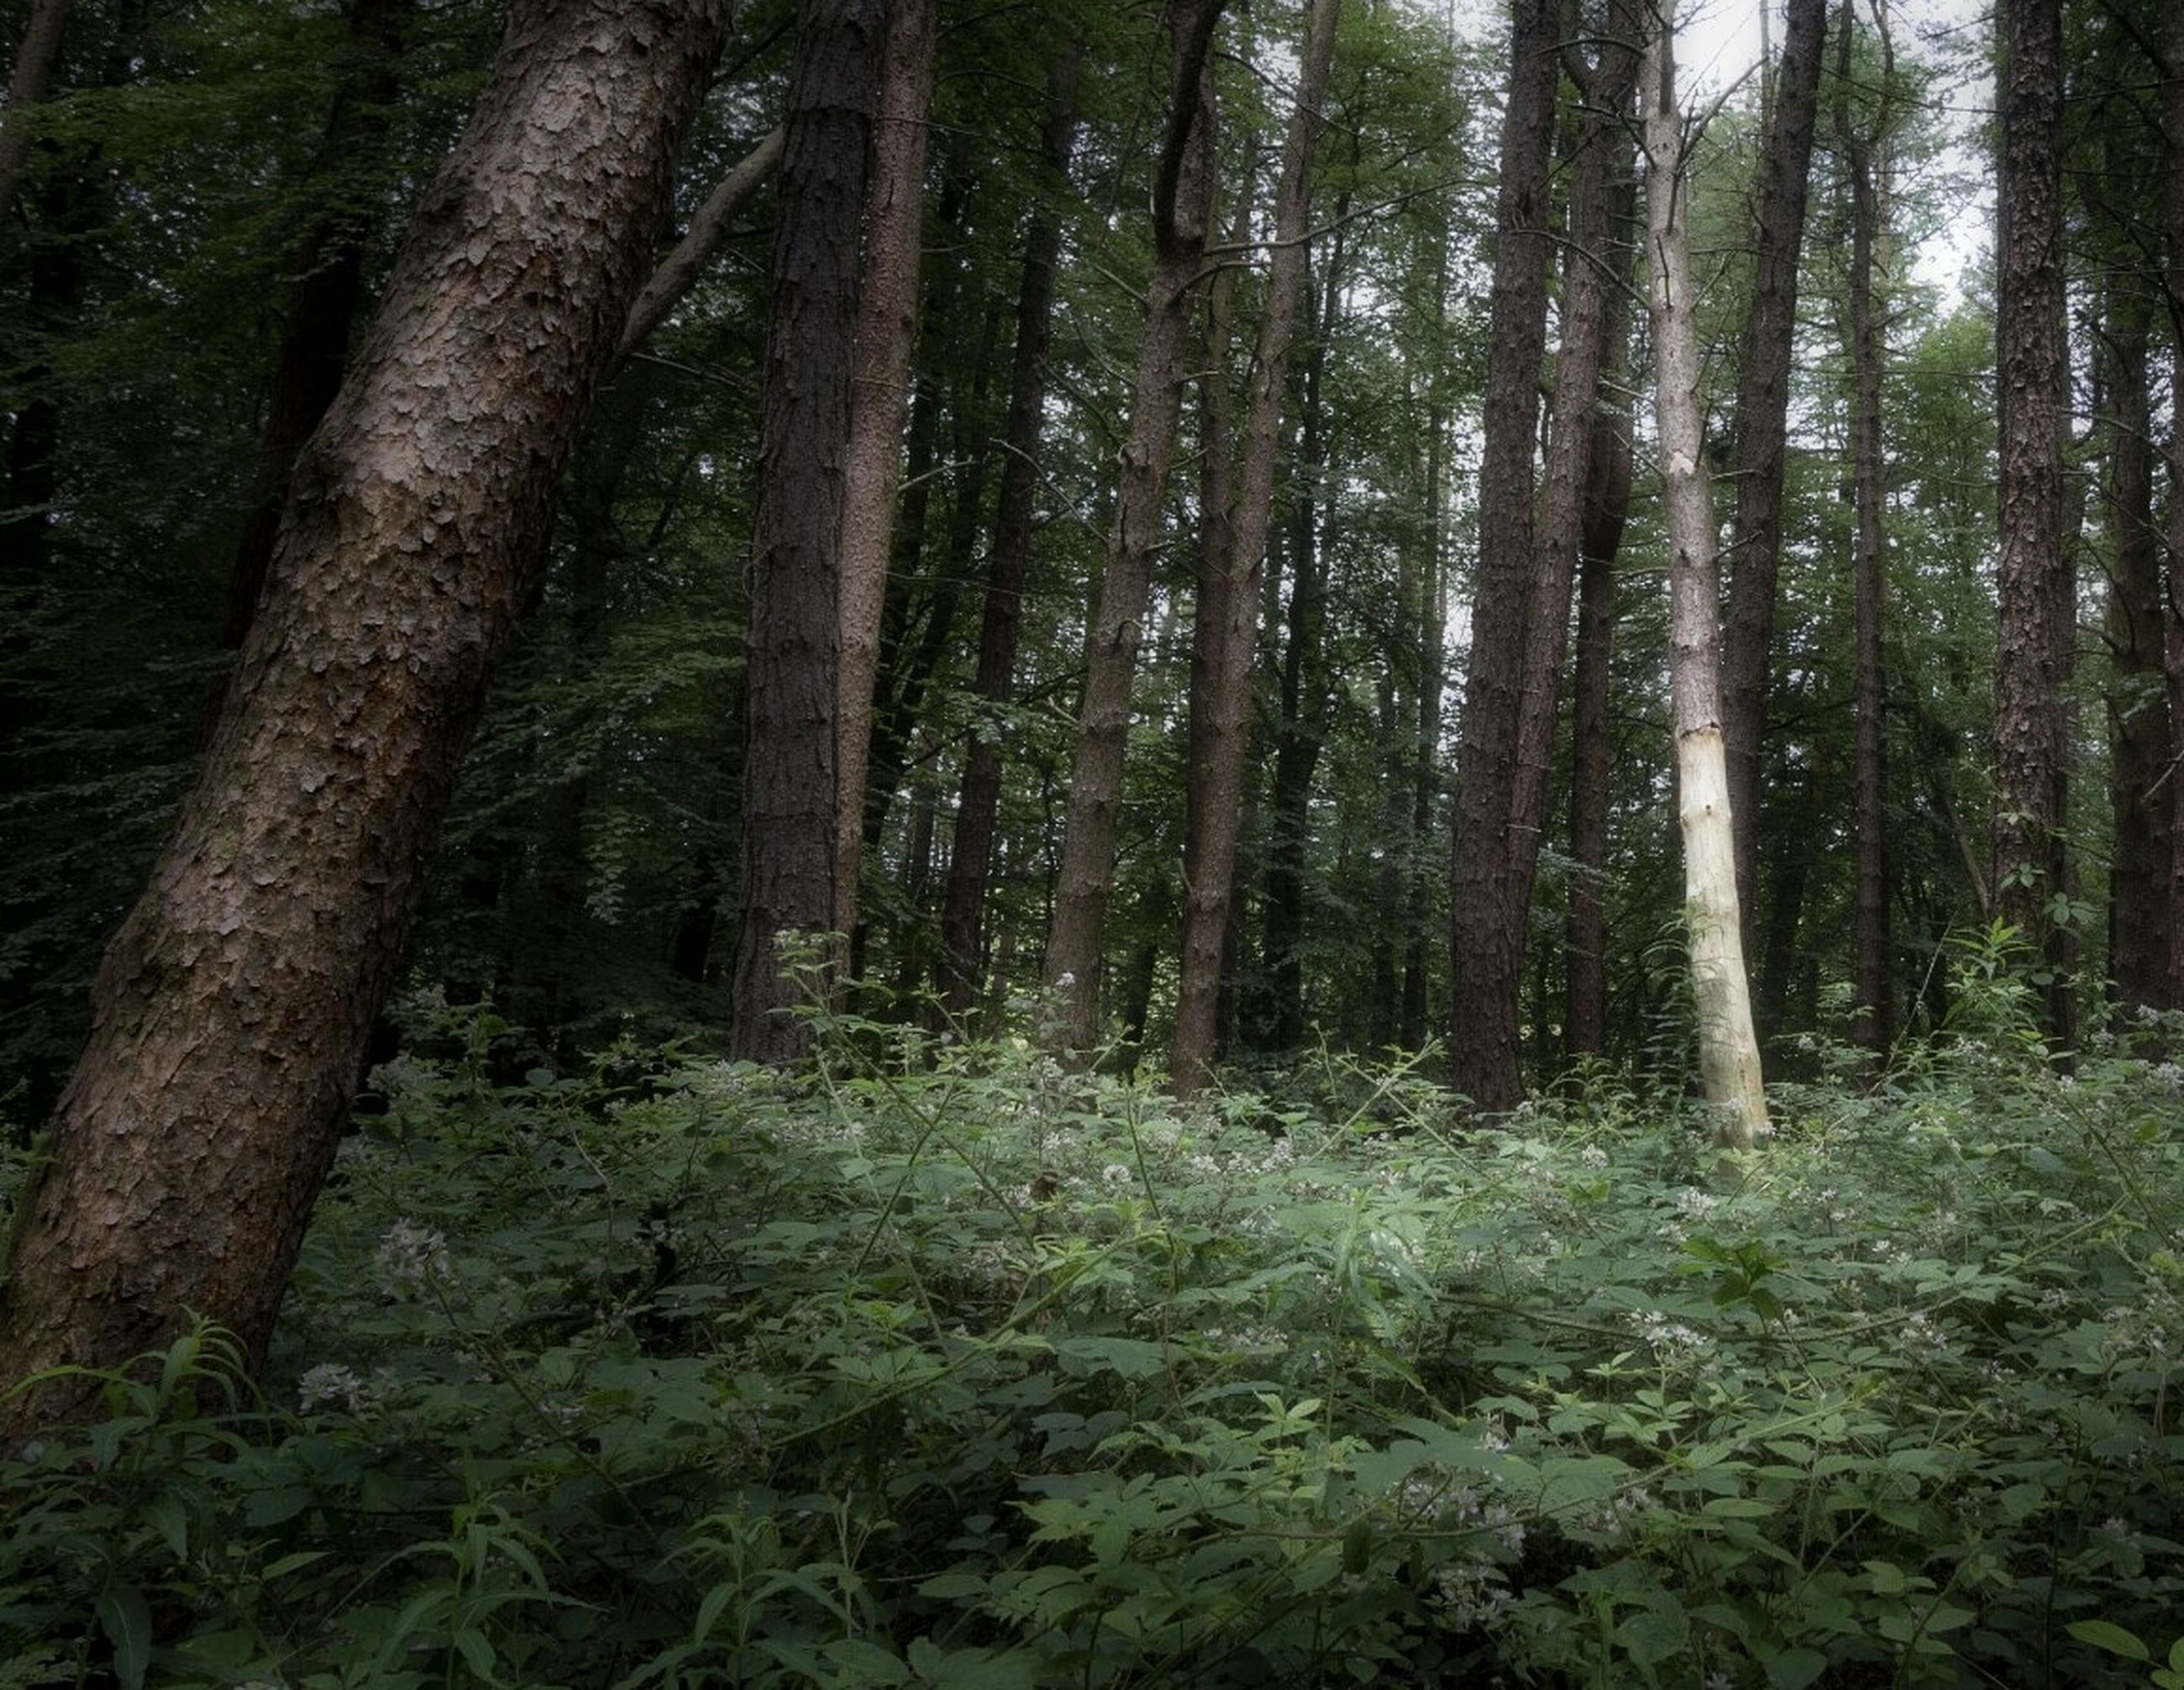 forest, plant, land, tree, trunk, tree trunk, woodland, growth, nature, tranquility, no people, beauty in nature, day, green color, scenics - nature, tranquil scene, outdoors, non-urban scene, environment, plant part, rainforest